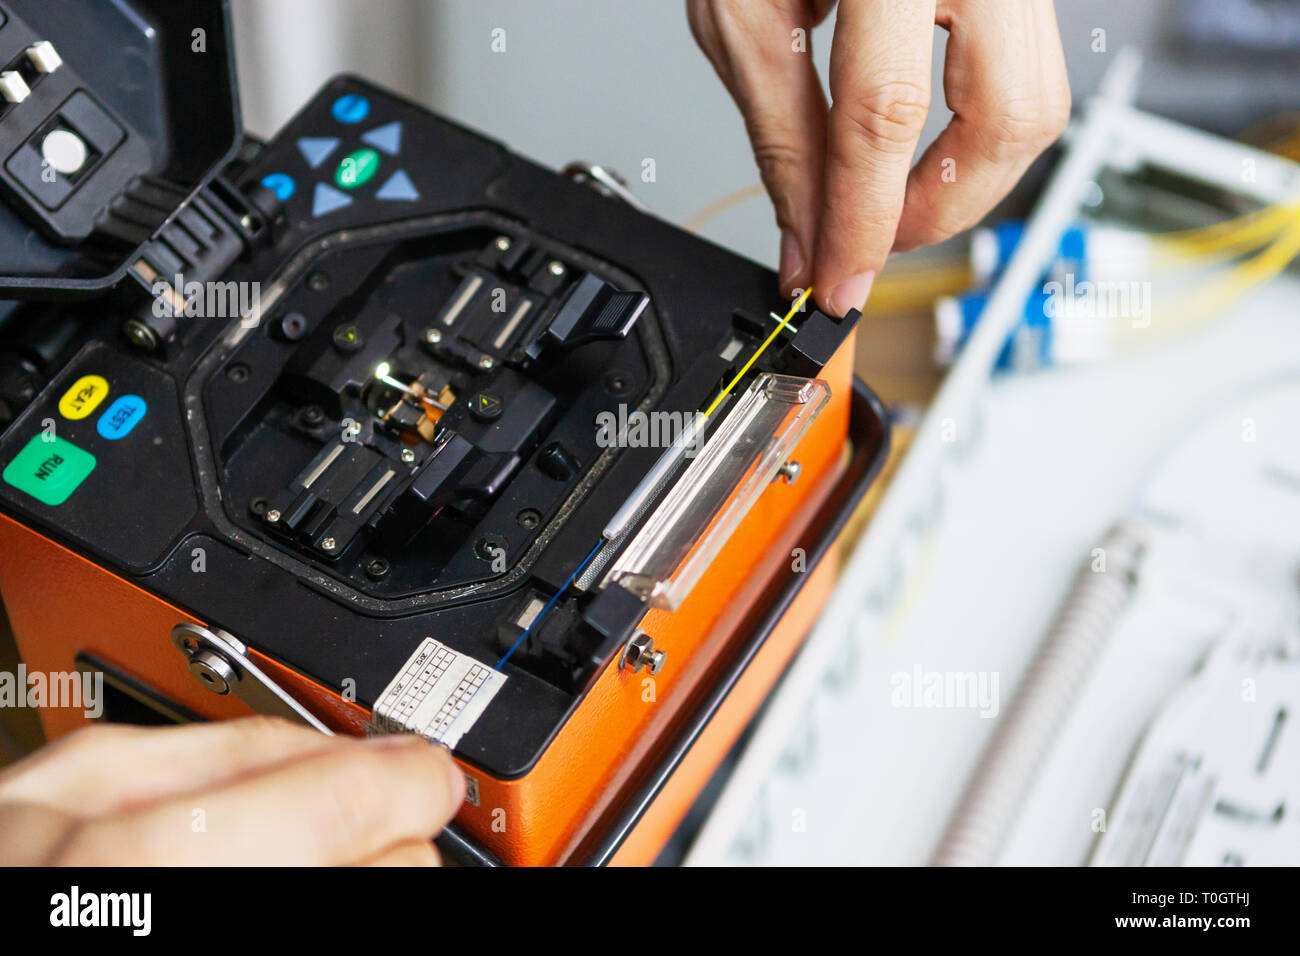 worker comunicate fiber optic cable at opto box. installing new network equipment. - Stock Image